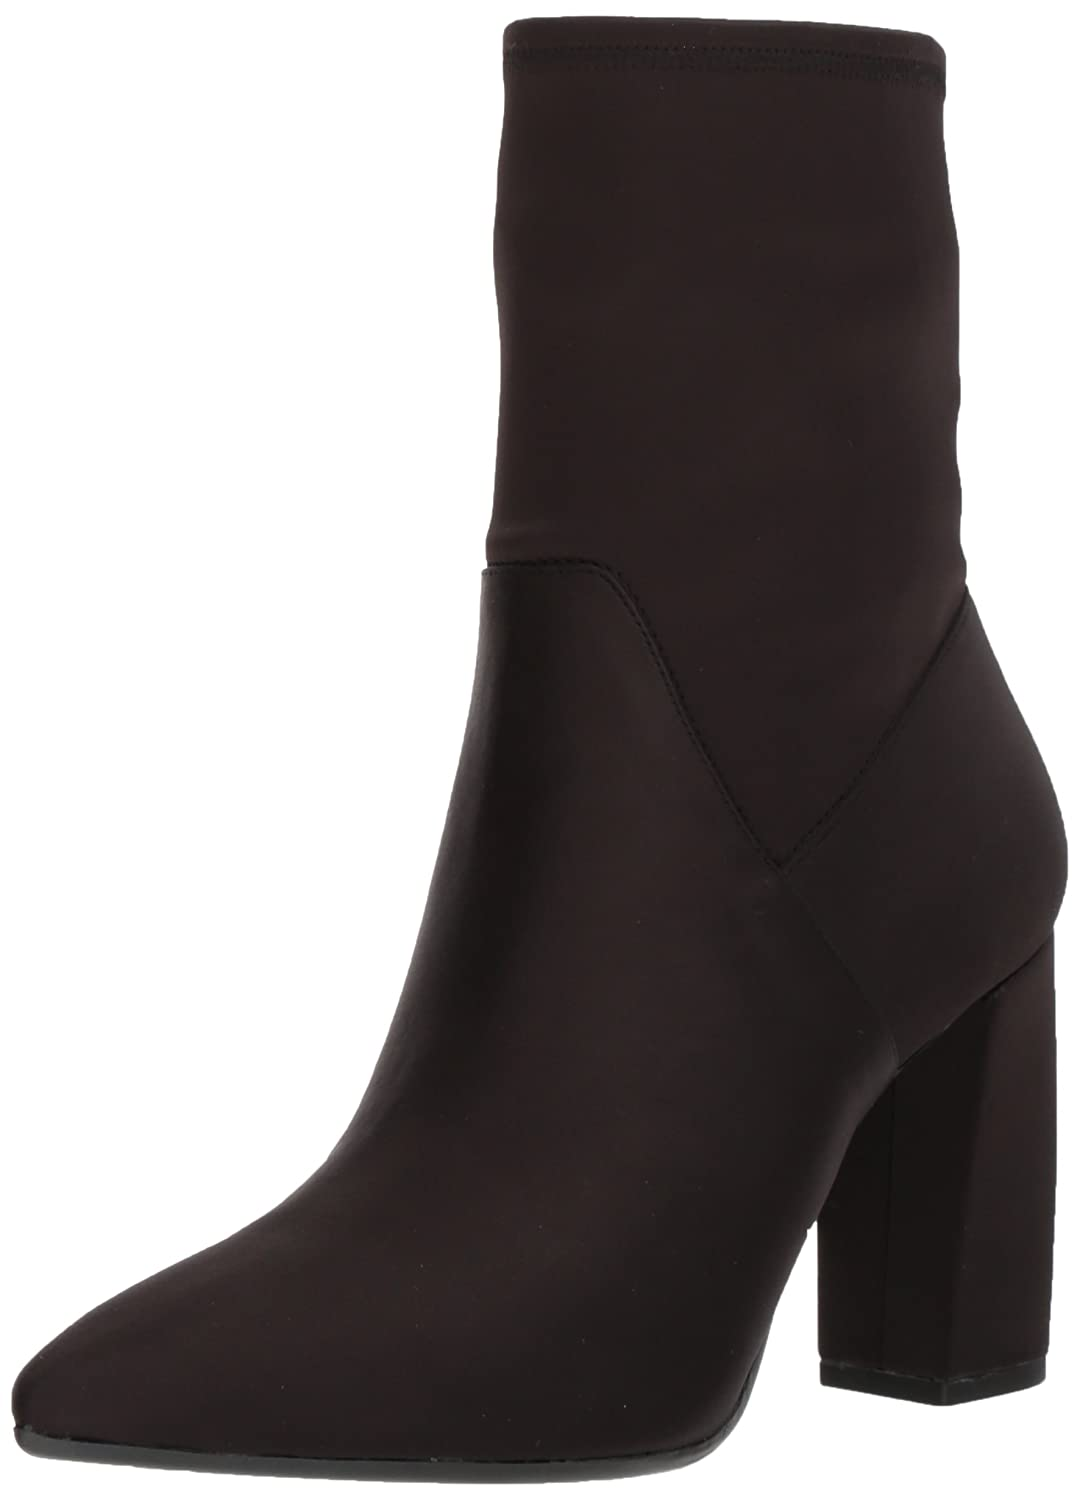 Aerosoles Women's Password Mid Calf Boot B076BSYCRS 5 B(M) US|Black Fabric